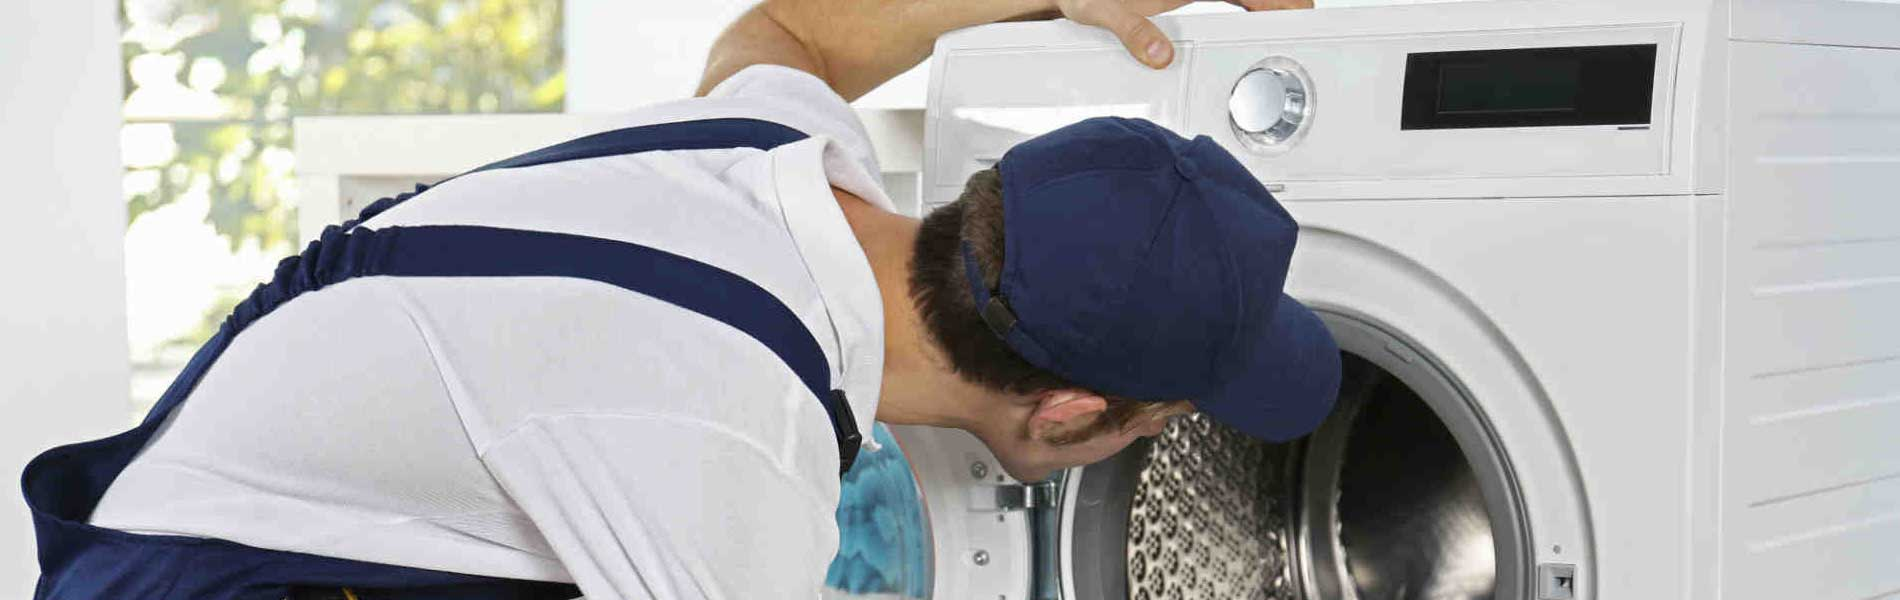 LG Washing Machine Mechanic in Chinmaya Nagar